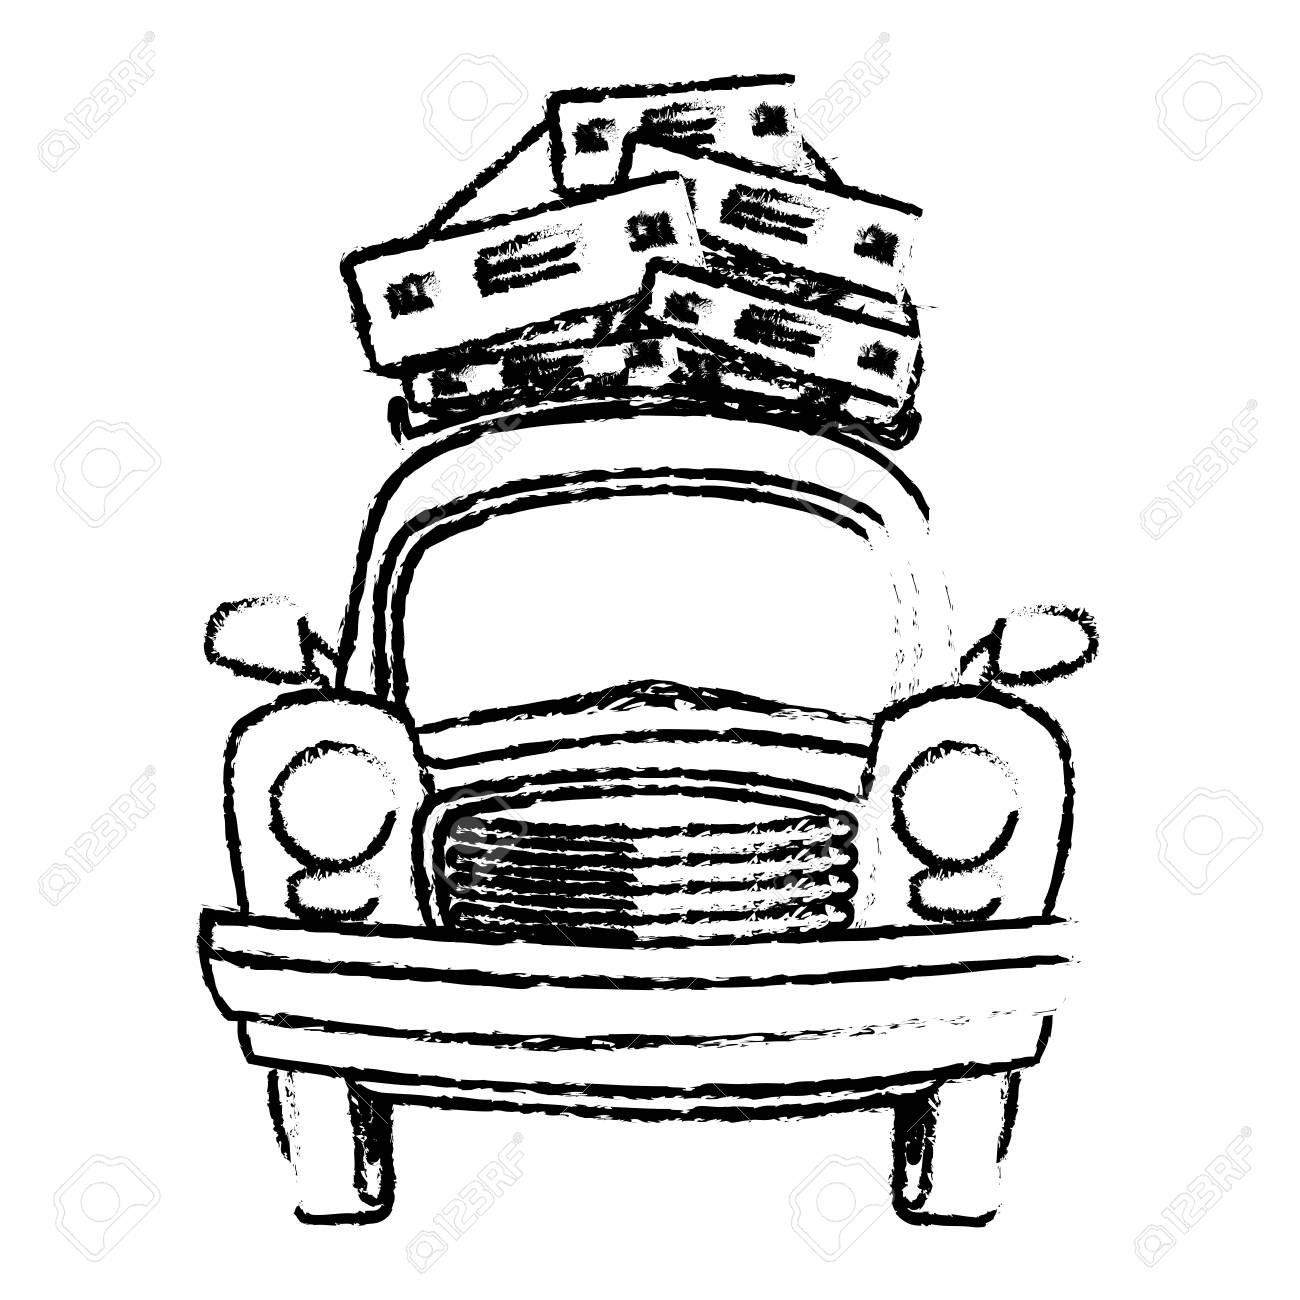 1300x1300 Sketch Vintage Car With Suitcases On Top Traveling Concept Royalty